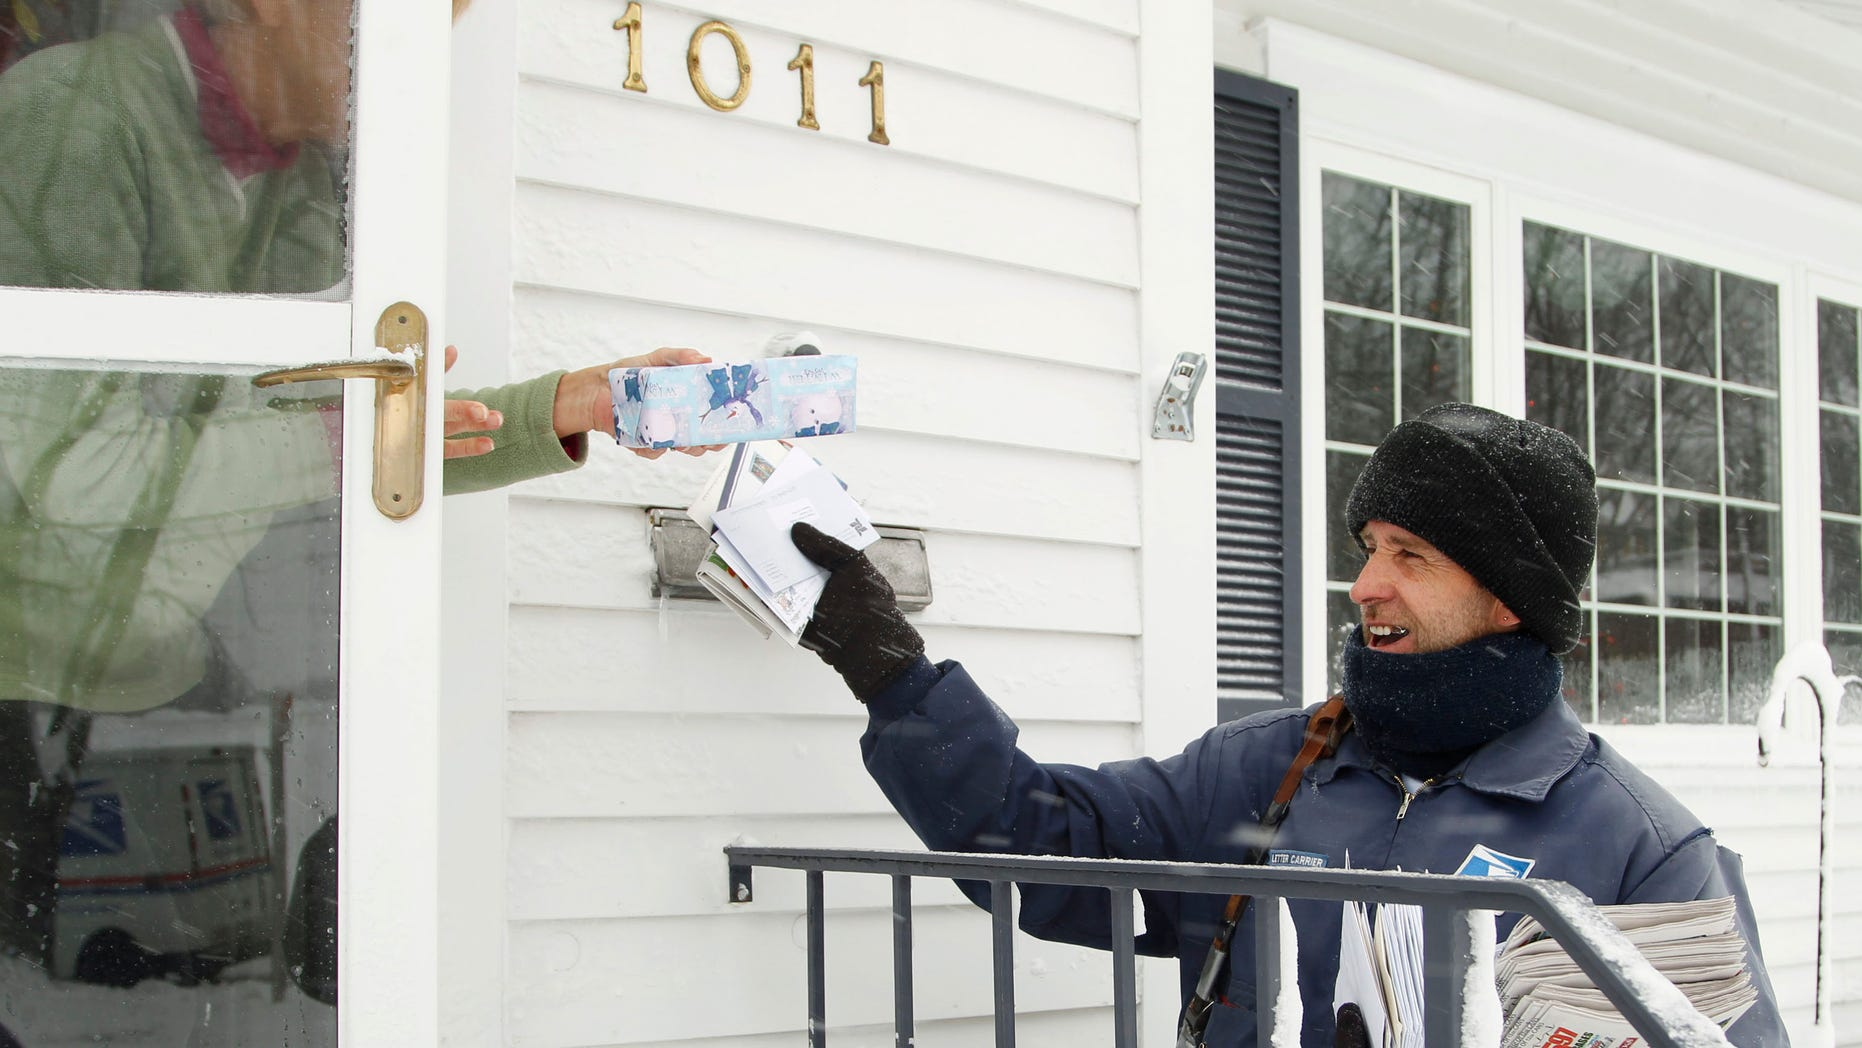 FILE: Dec. 20, 2012: Mail carrier Mike Perkins delivers mail in the snow along Fletcher Avenue in Waterloo, Iowa.